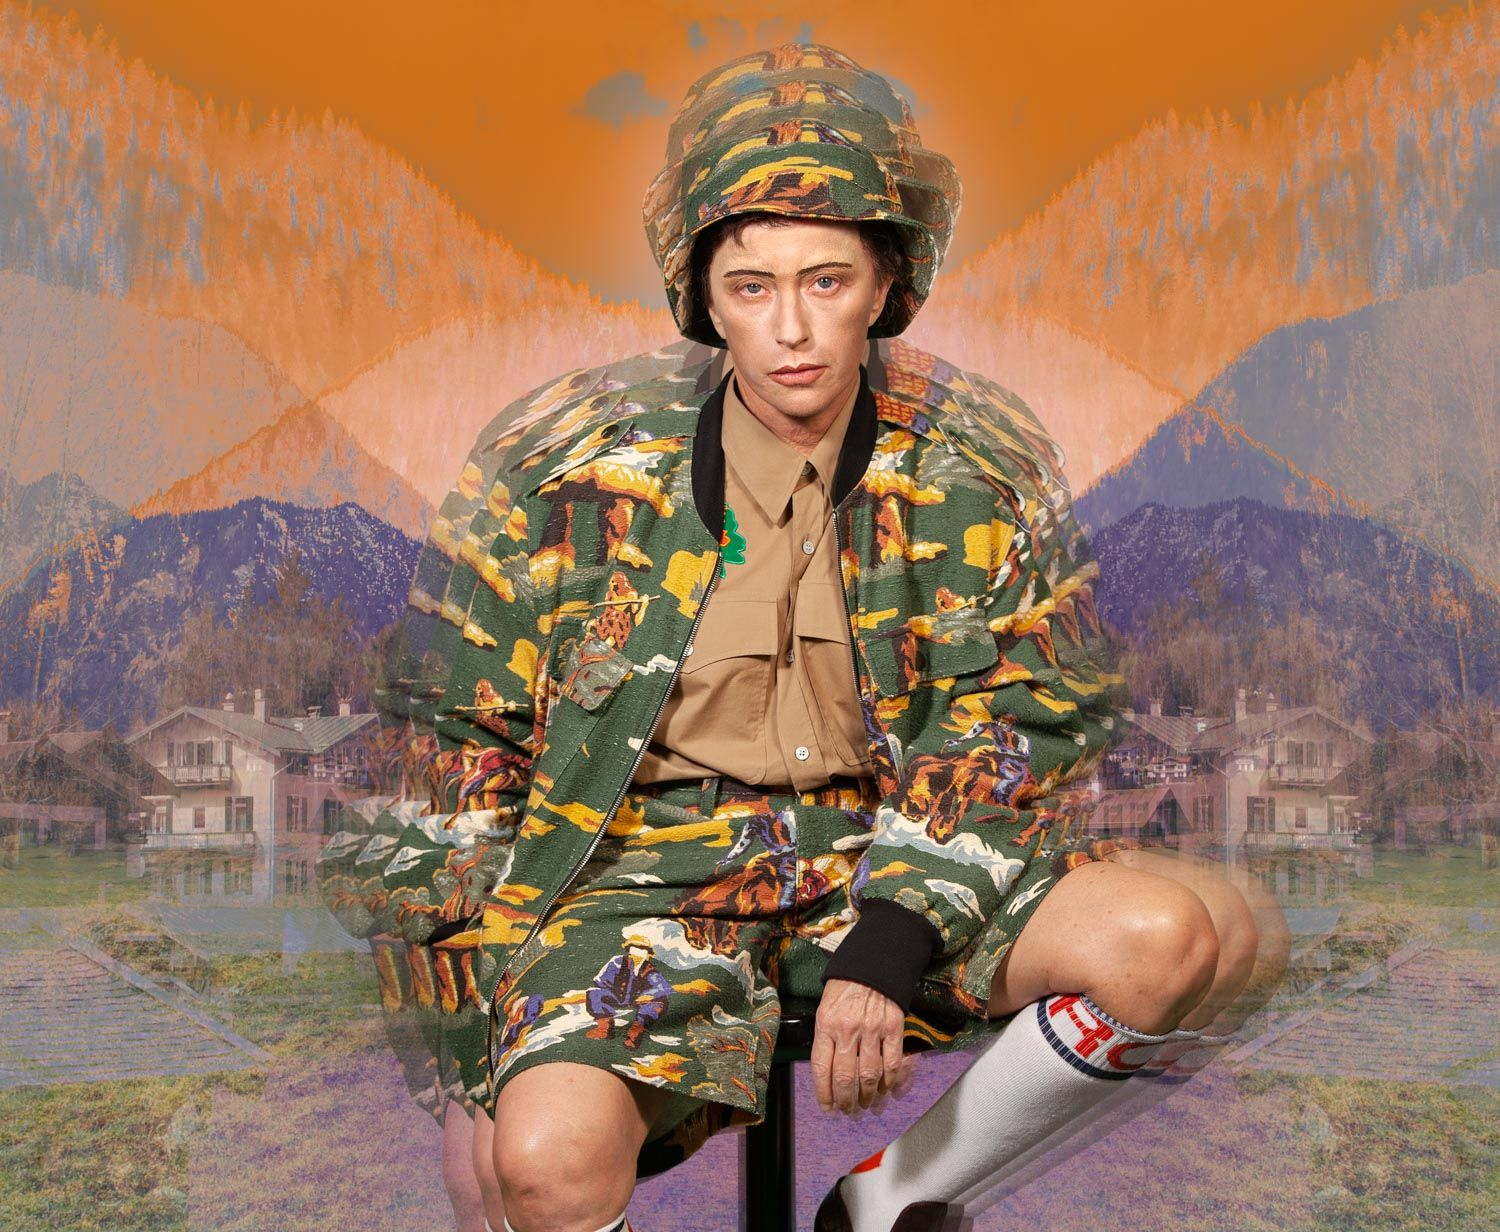 Cindy Sherman dressed as male feminine army cadet playing on Identity, Androgyny and masculinity.